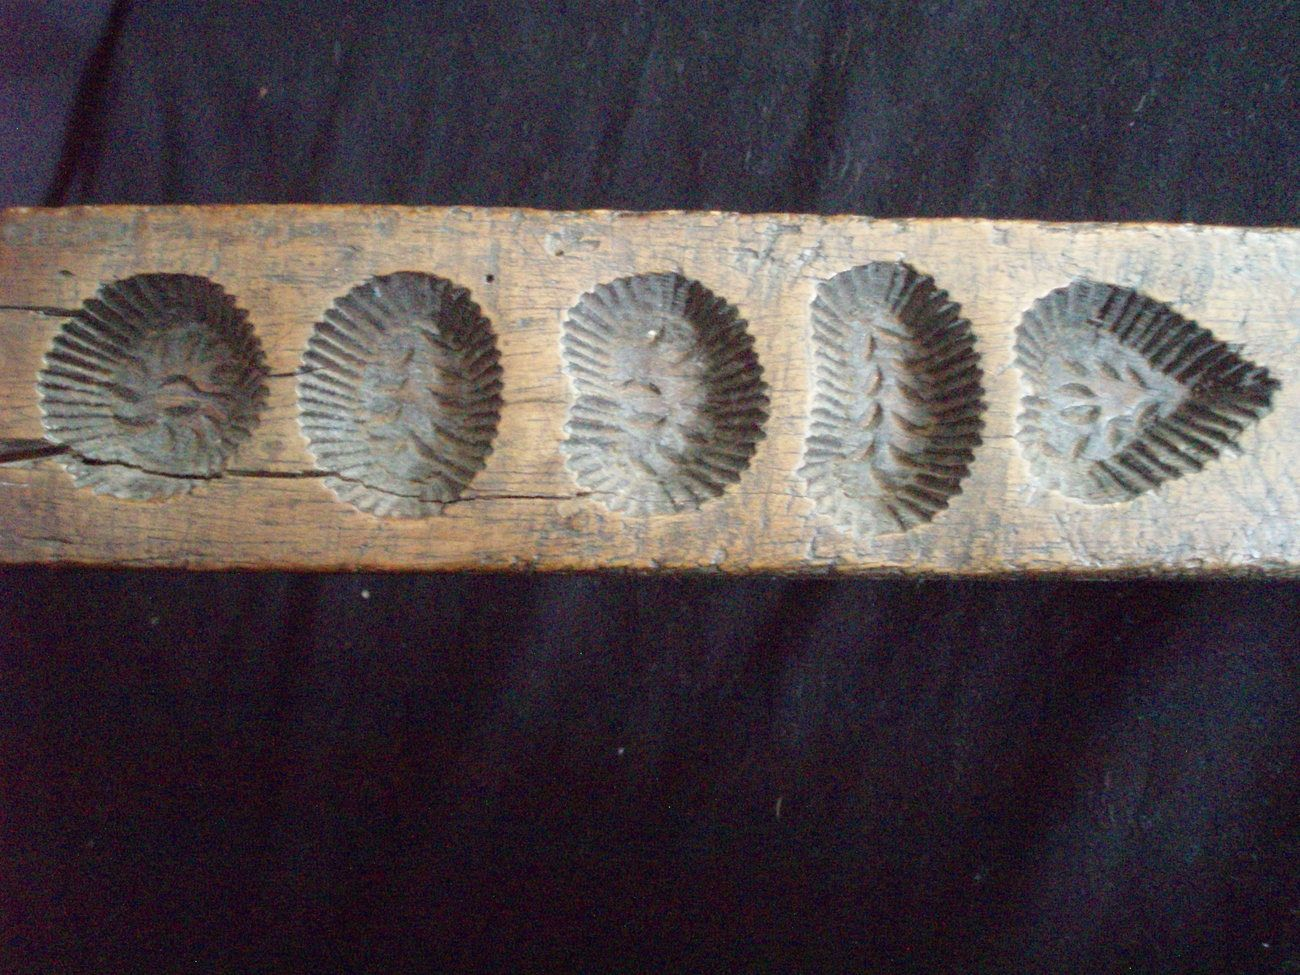 Antique maple sugar candy mold hand carved wood